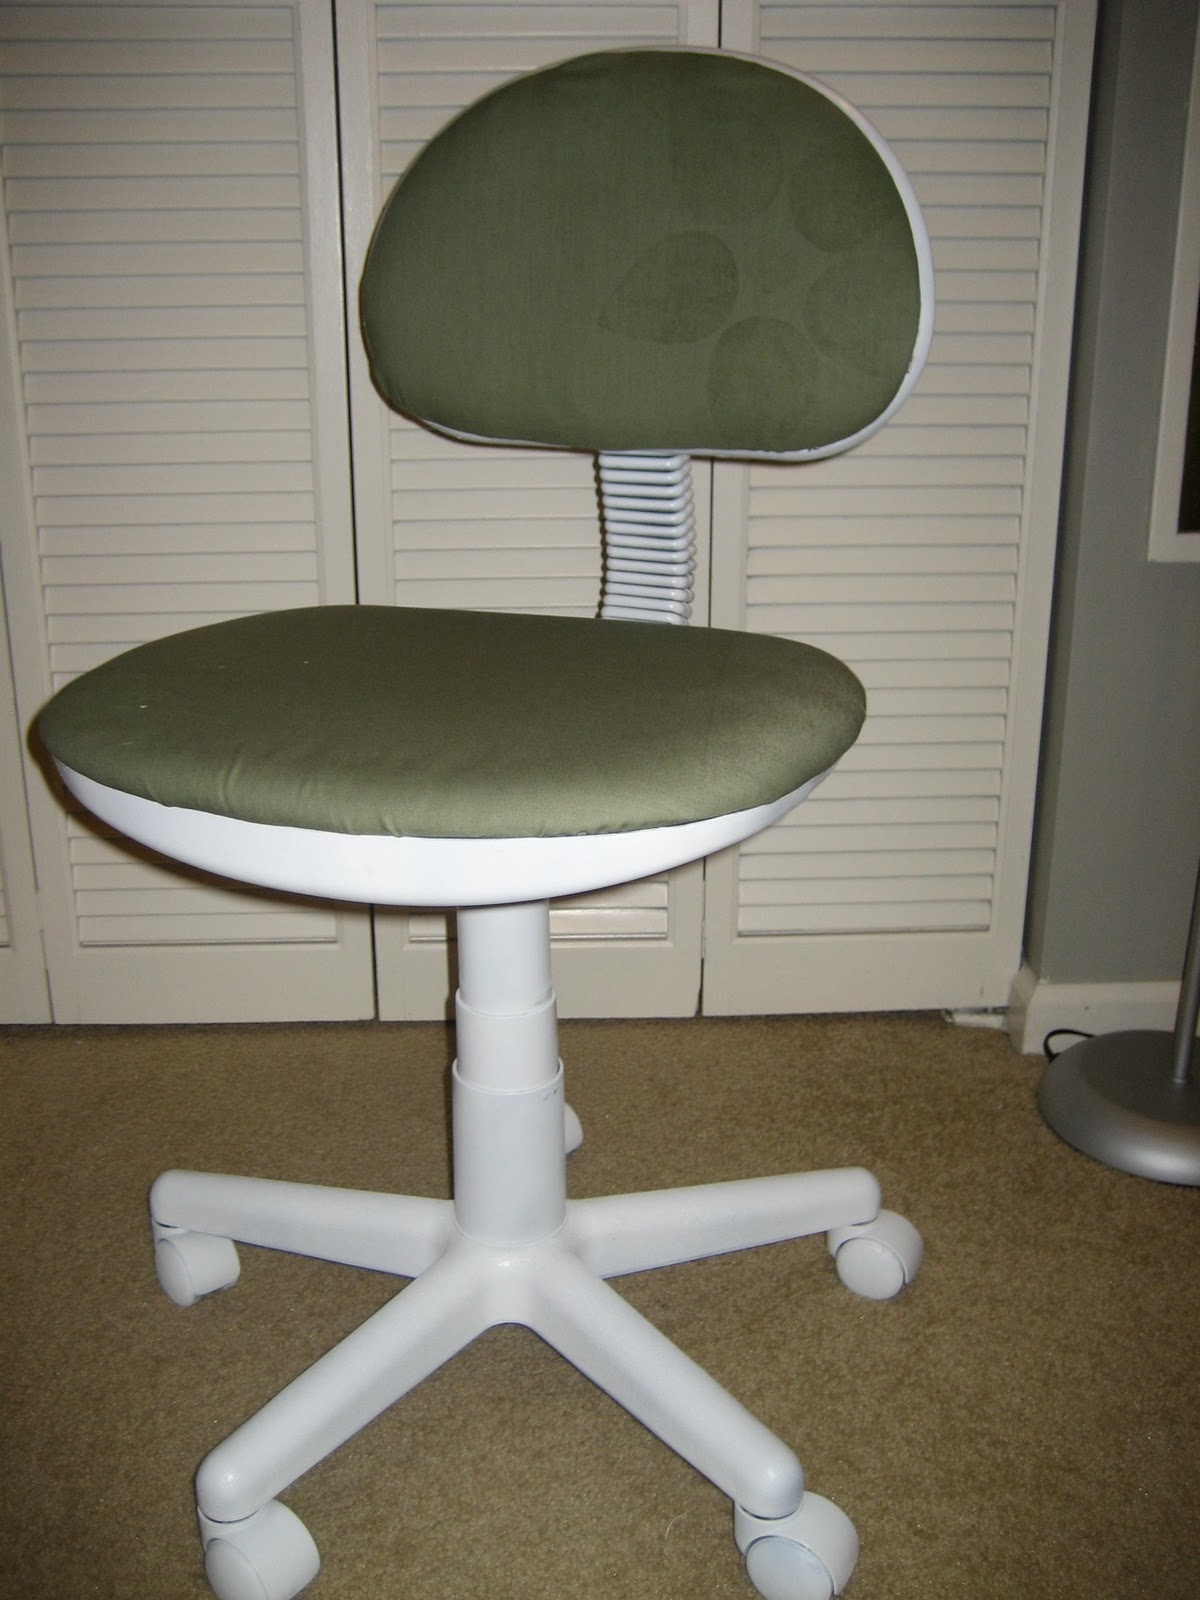 Reupholster Office Chair Back Baby Glider Australia 31 Diy How To A Desk Tutorial